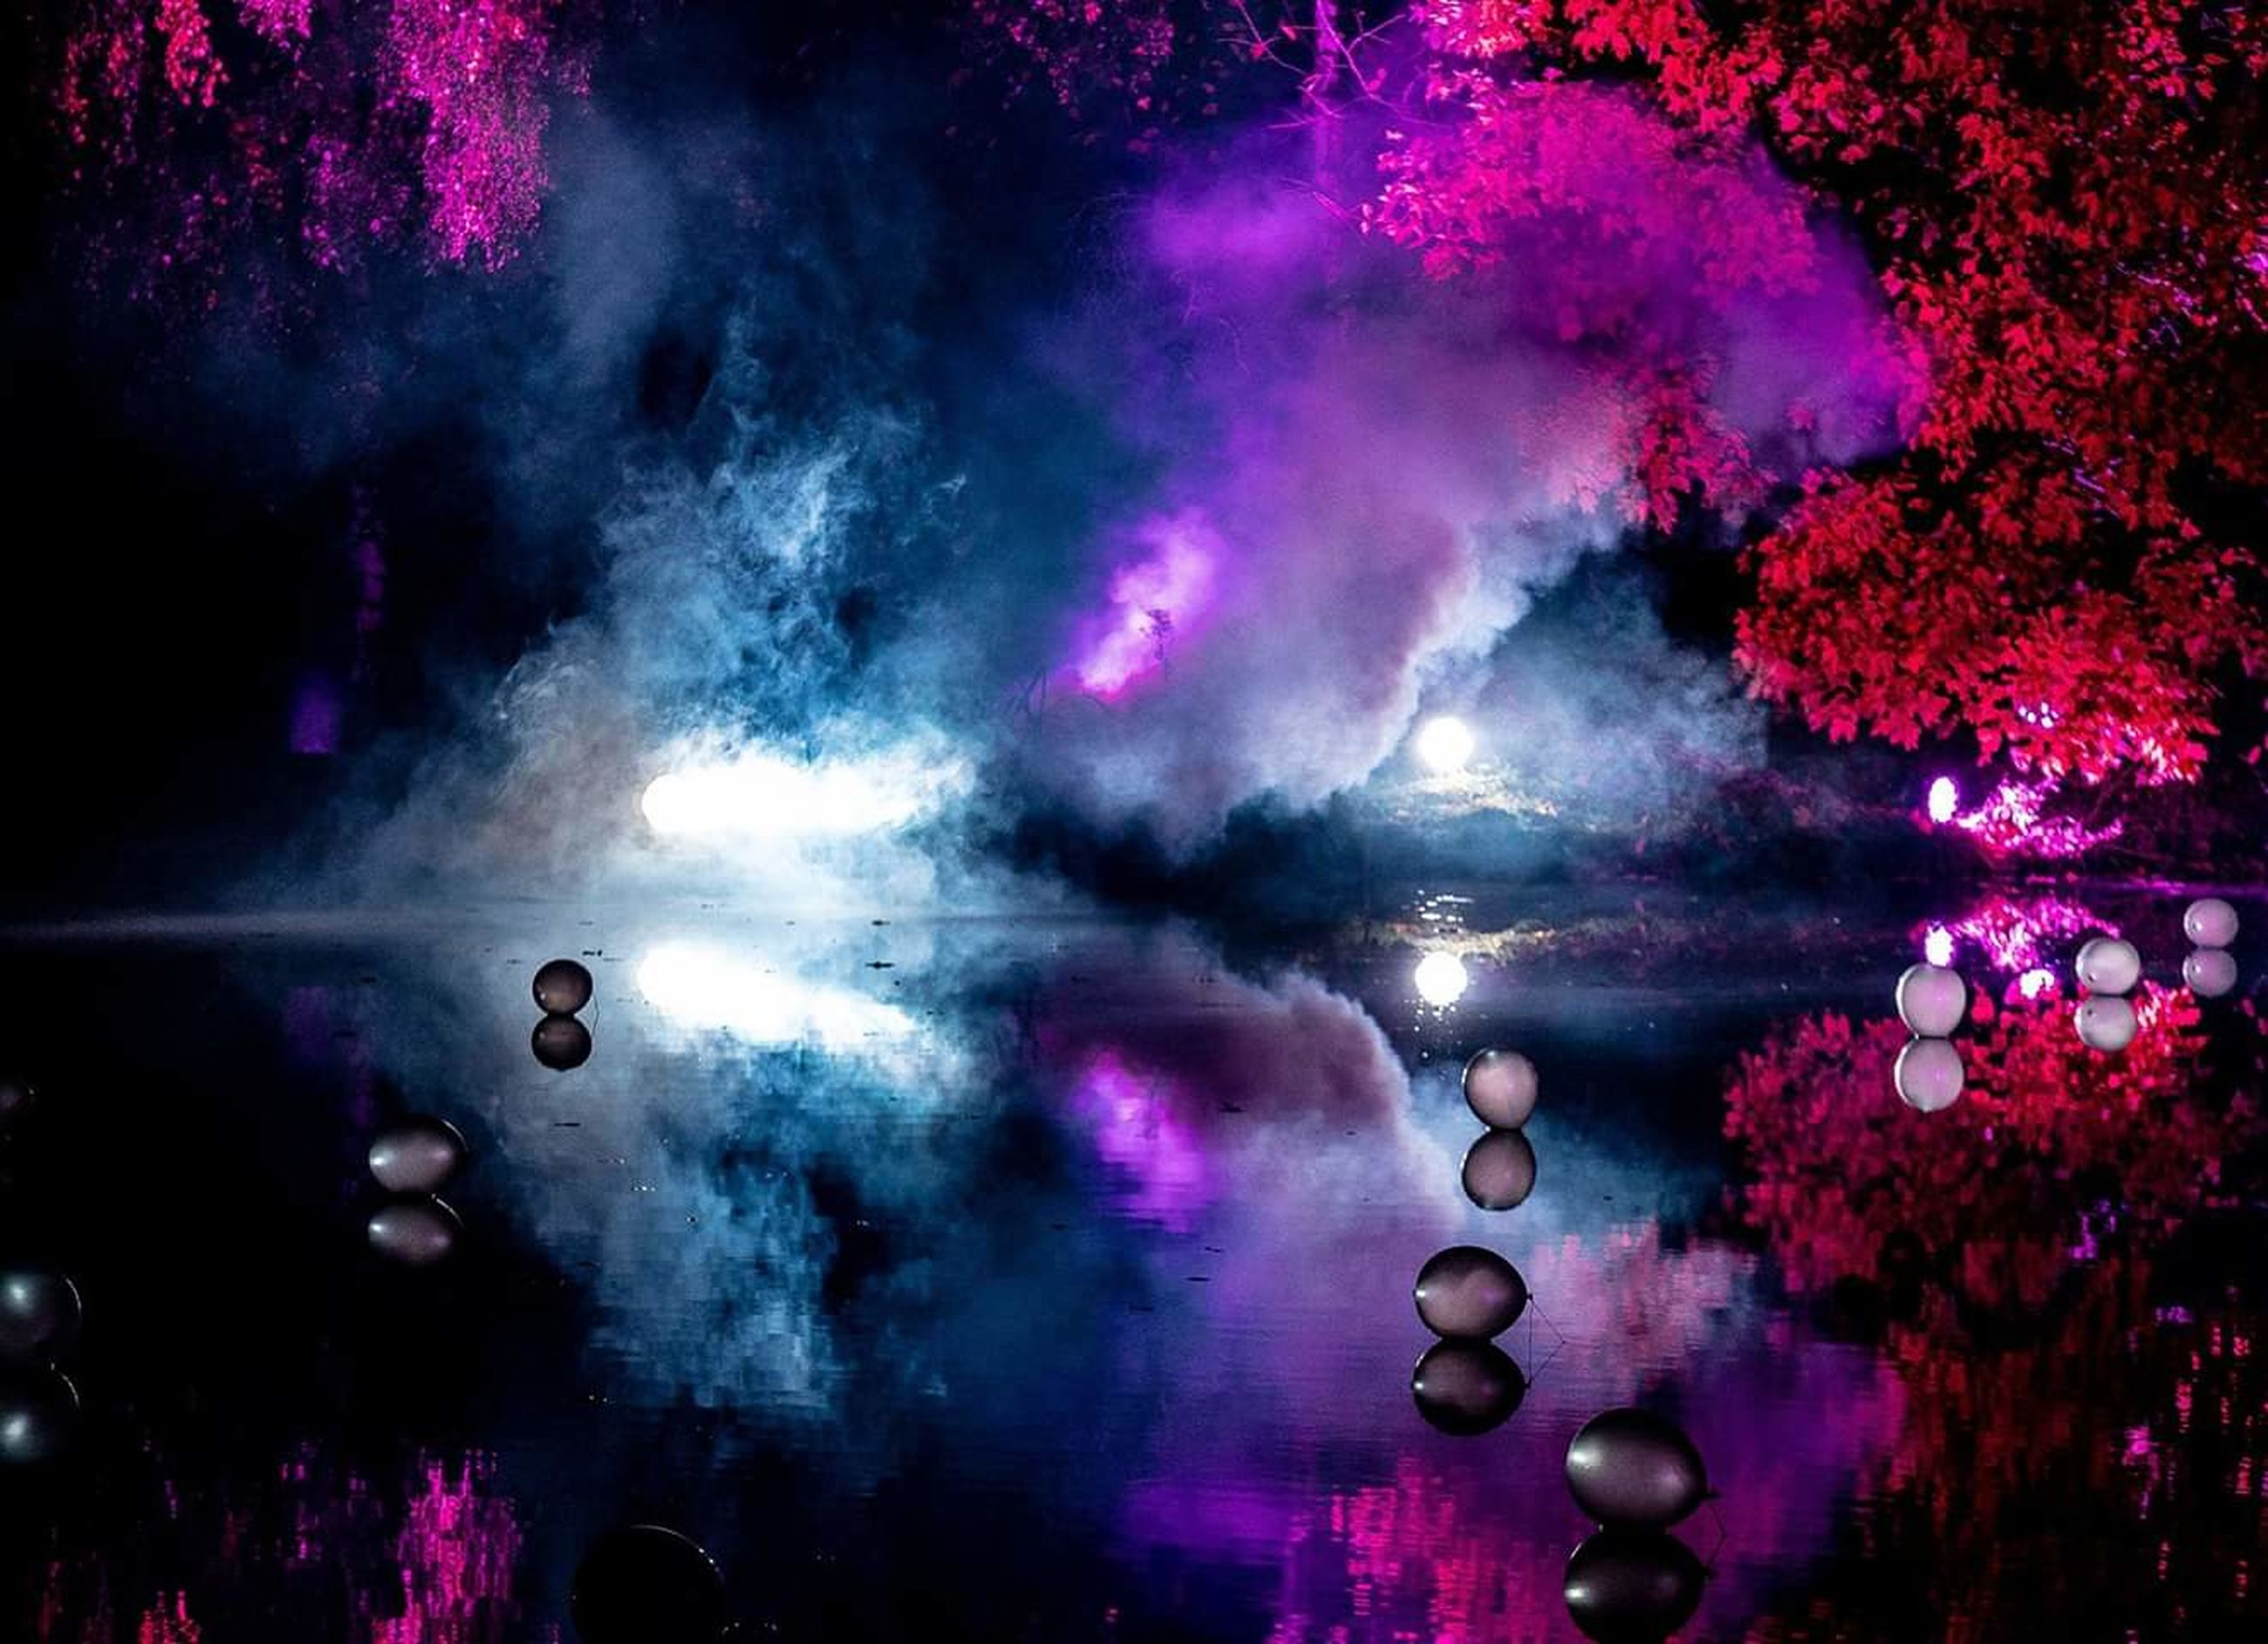 night, illuminated, smoke - physical structure, beauty in nature, outdoors, water, pink color, no people, multi colored, arts culture and entertainment, nature, motion, celebration, purple, lighting equipment, nightlife